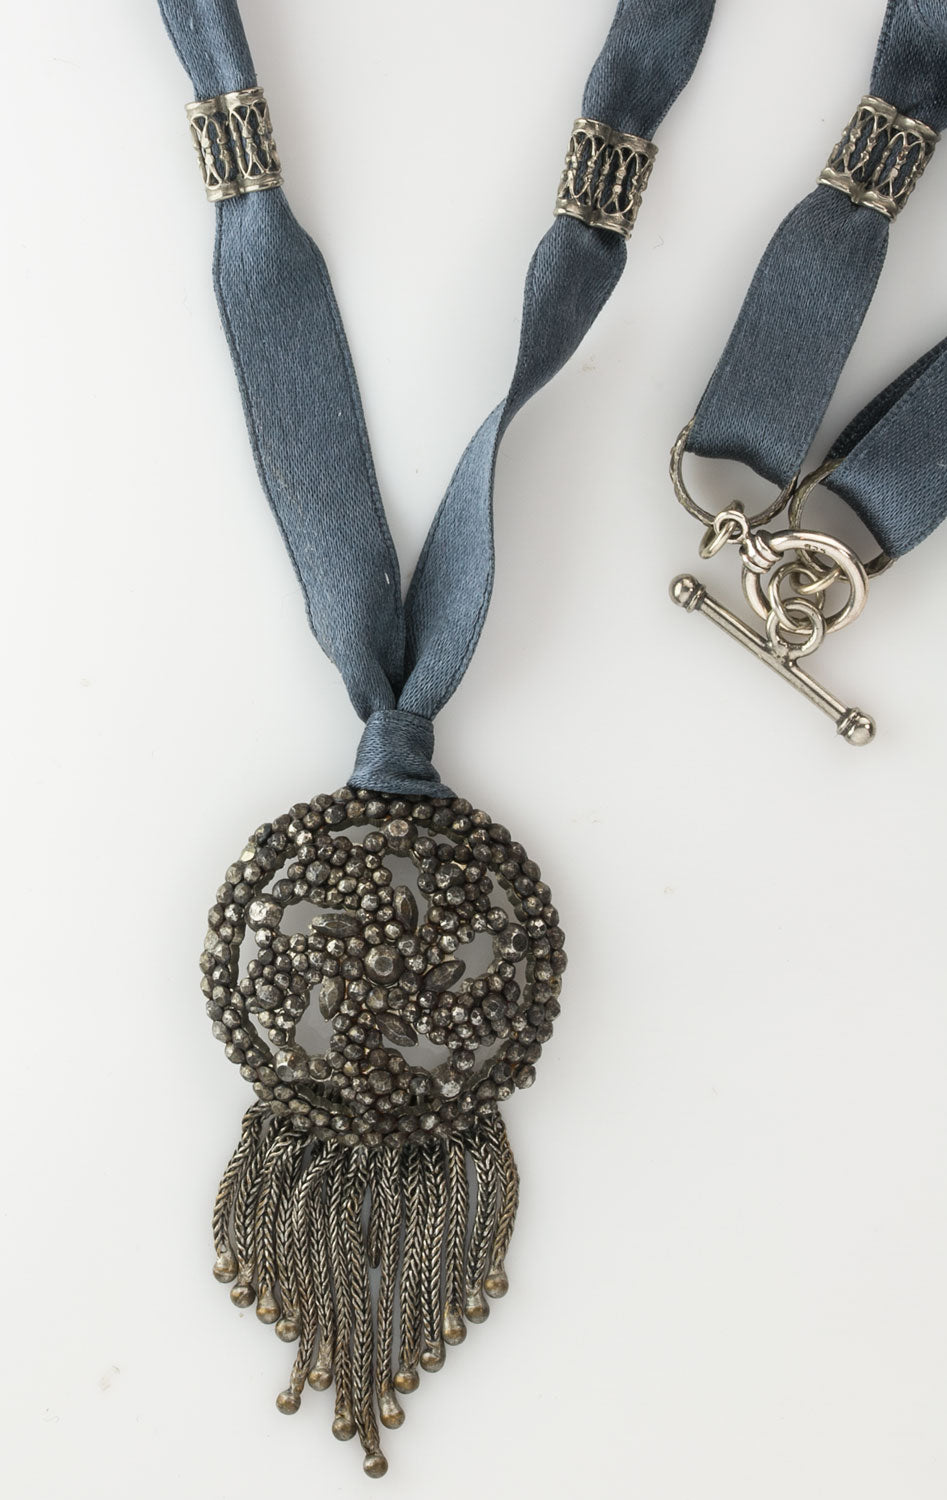 Antique French cut steel pendant on satin ribbon with silver ornaments and clasp. pdvc466